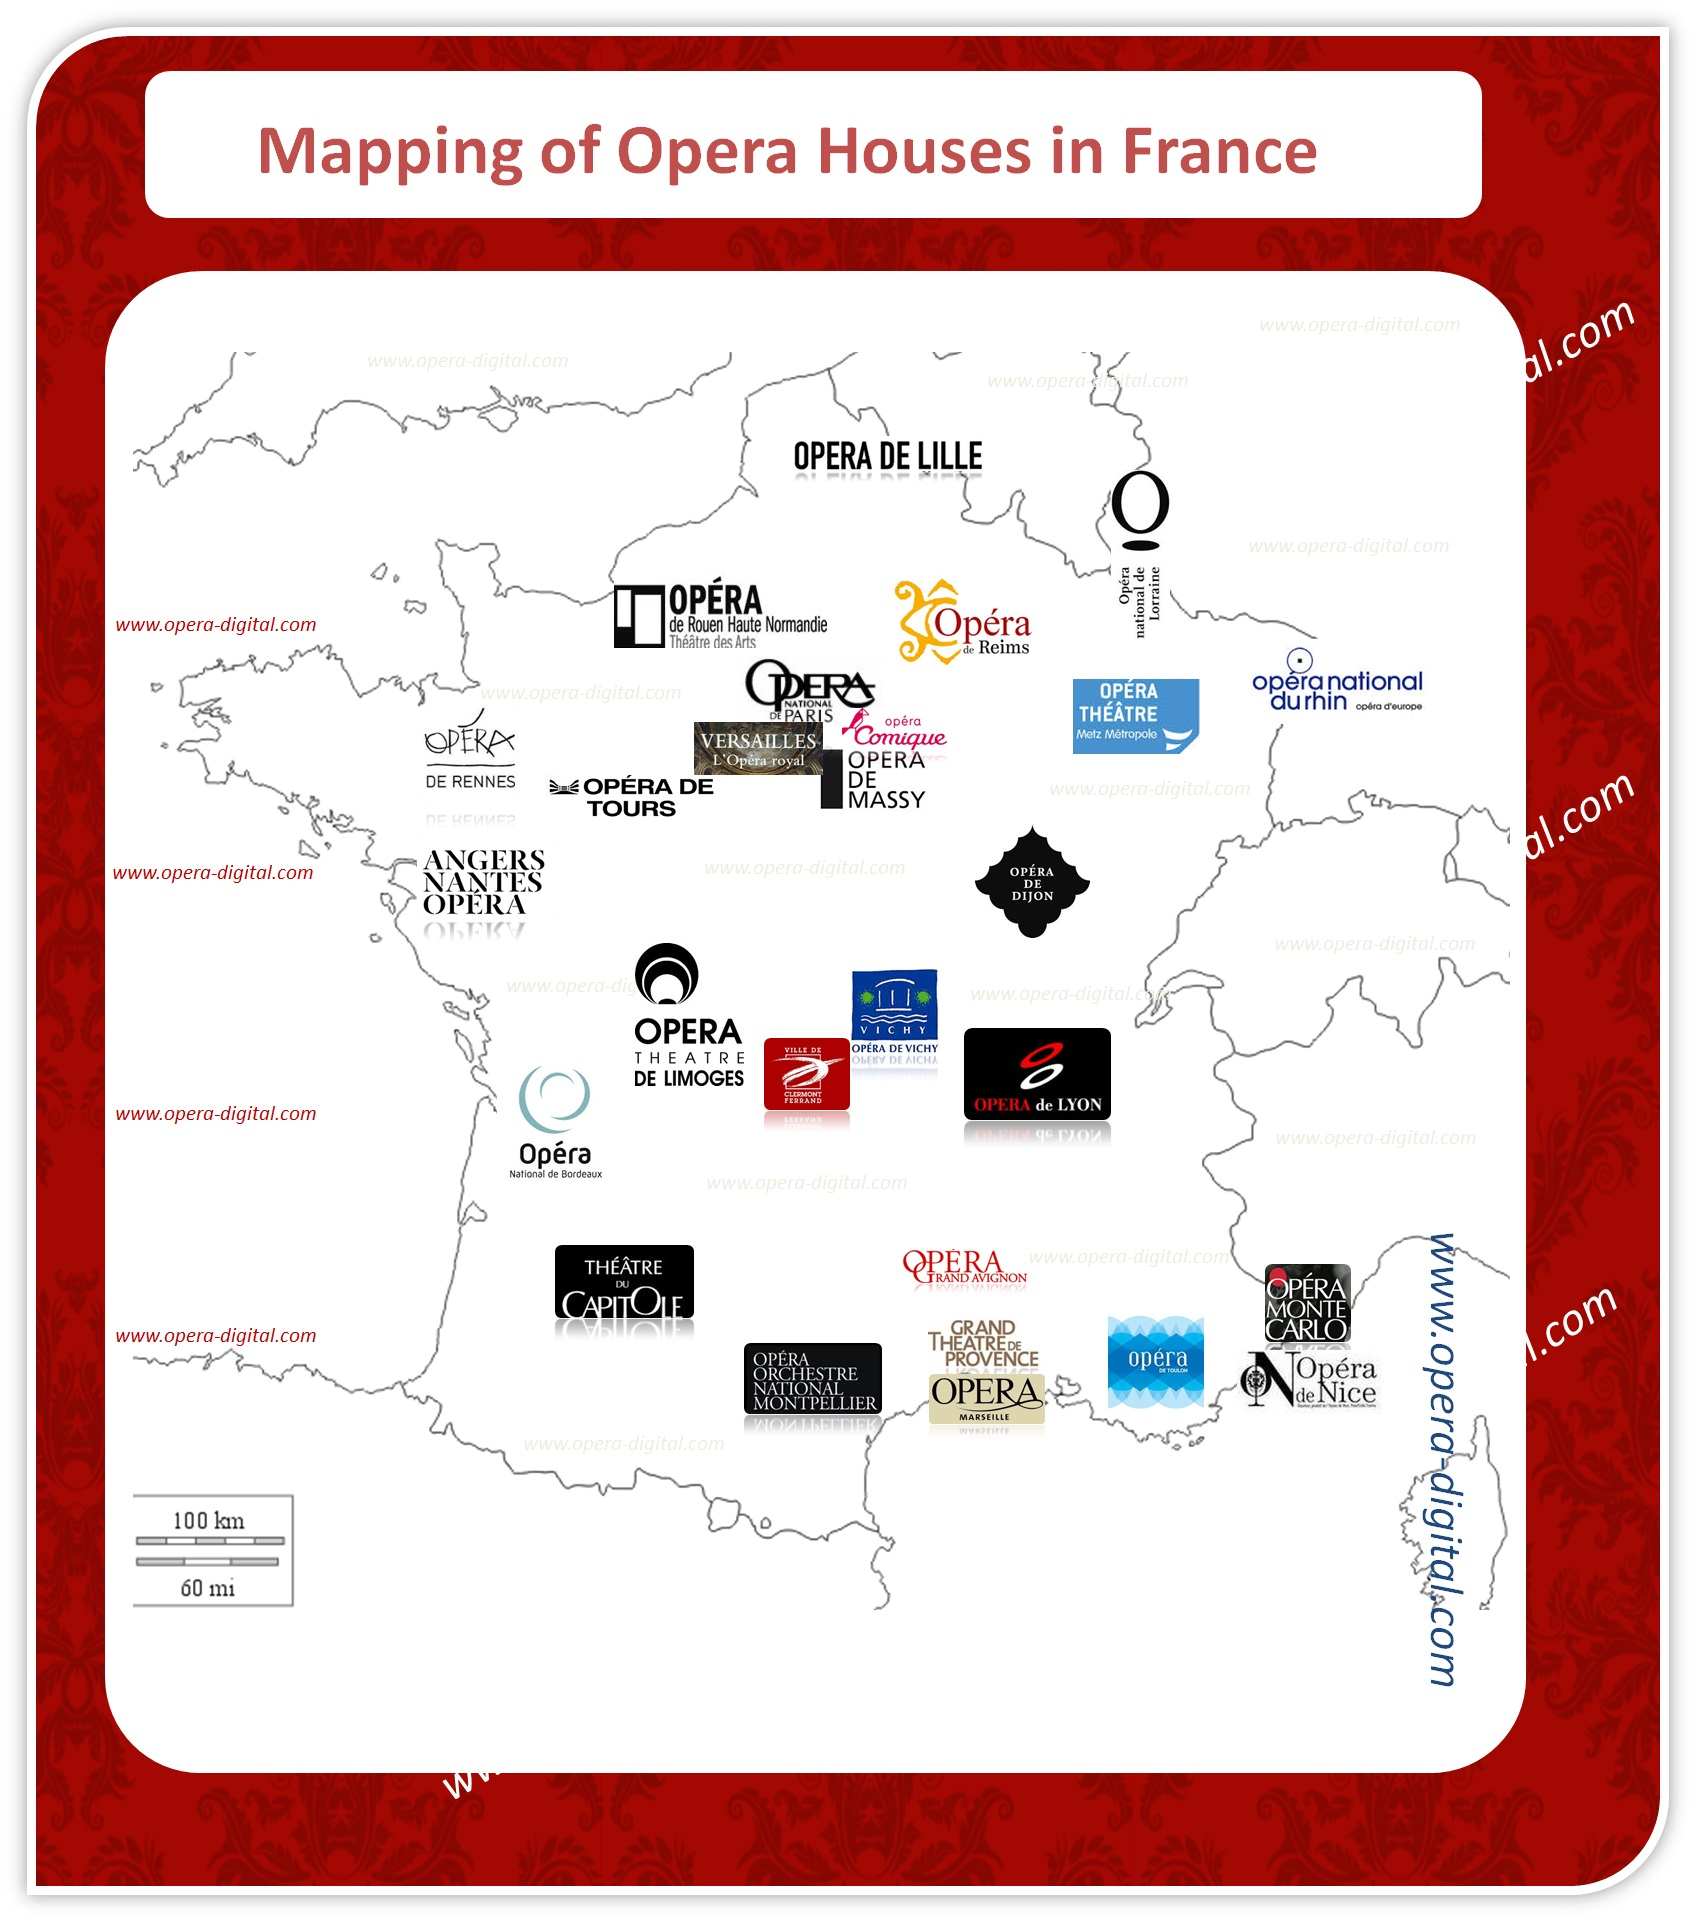 Mapping of opera houses in France